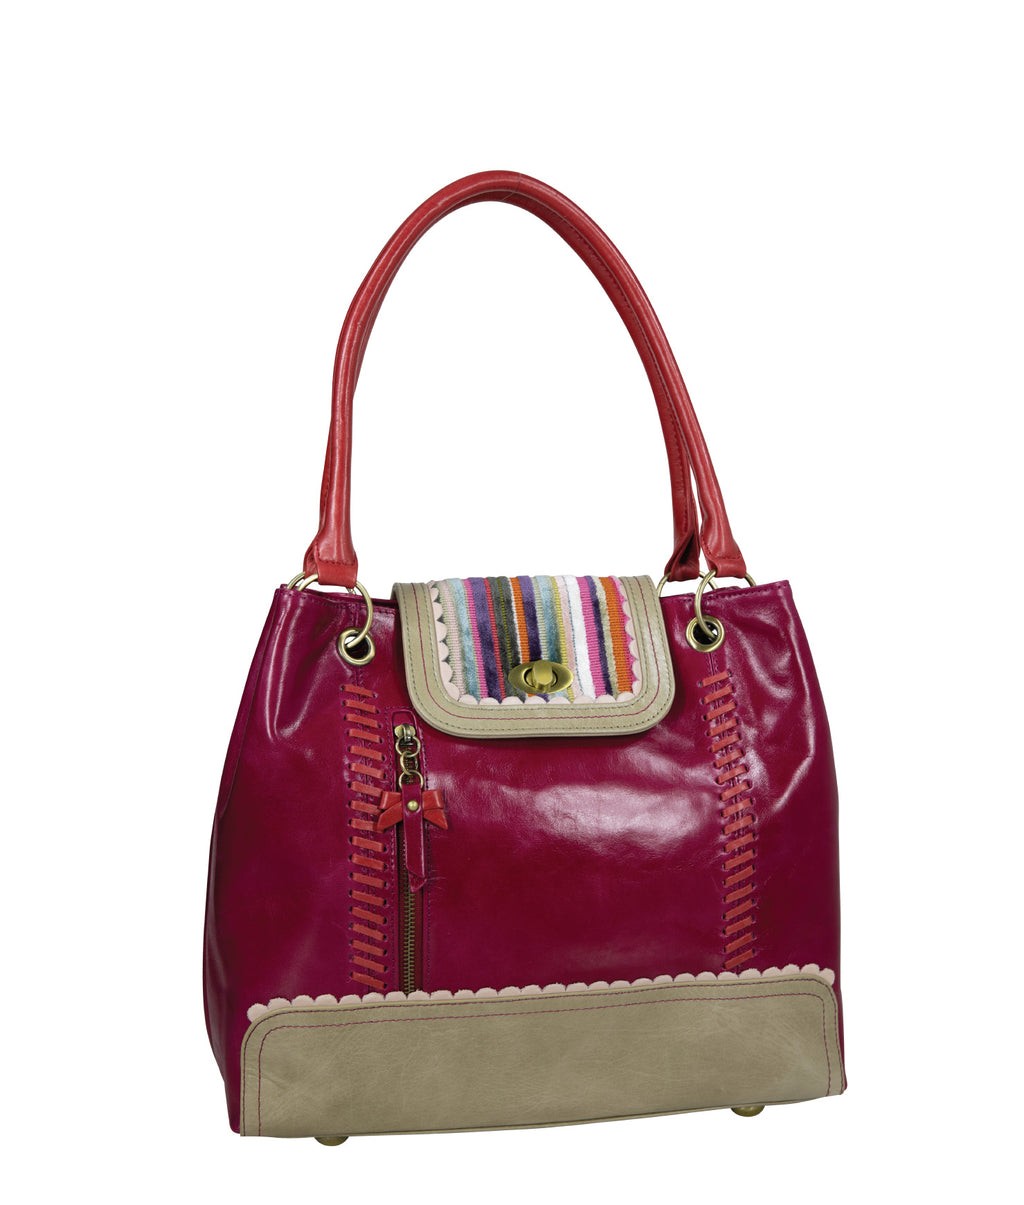 MONTANA Shoulder Tote - Gypsy